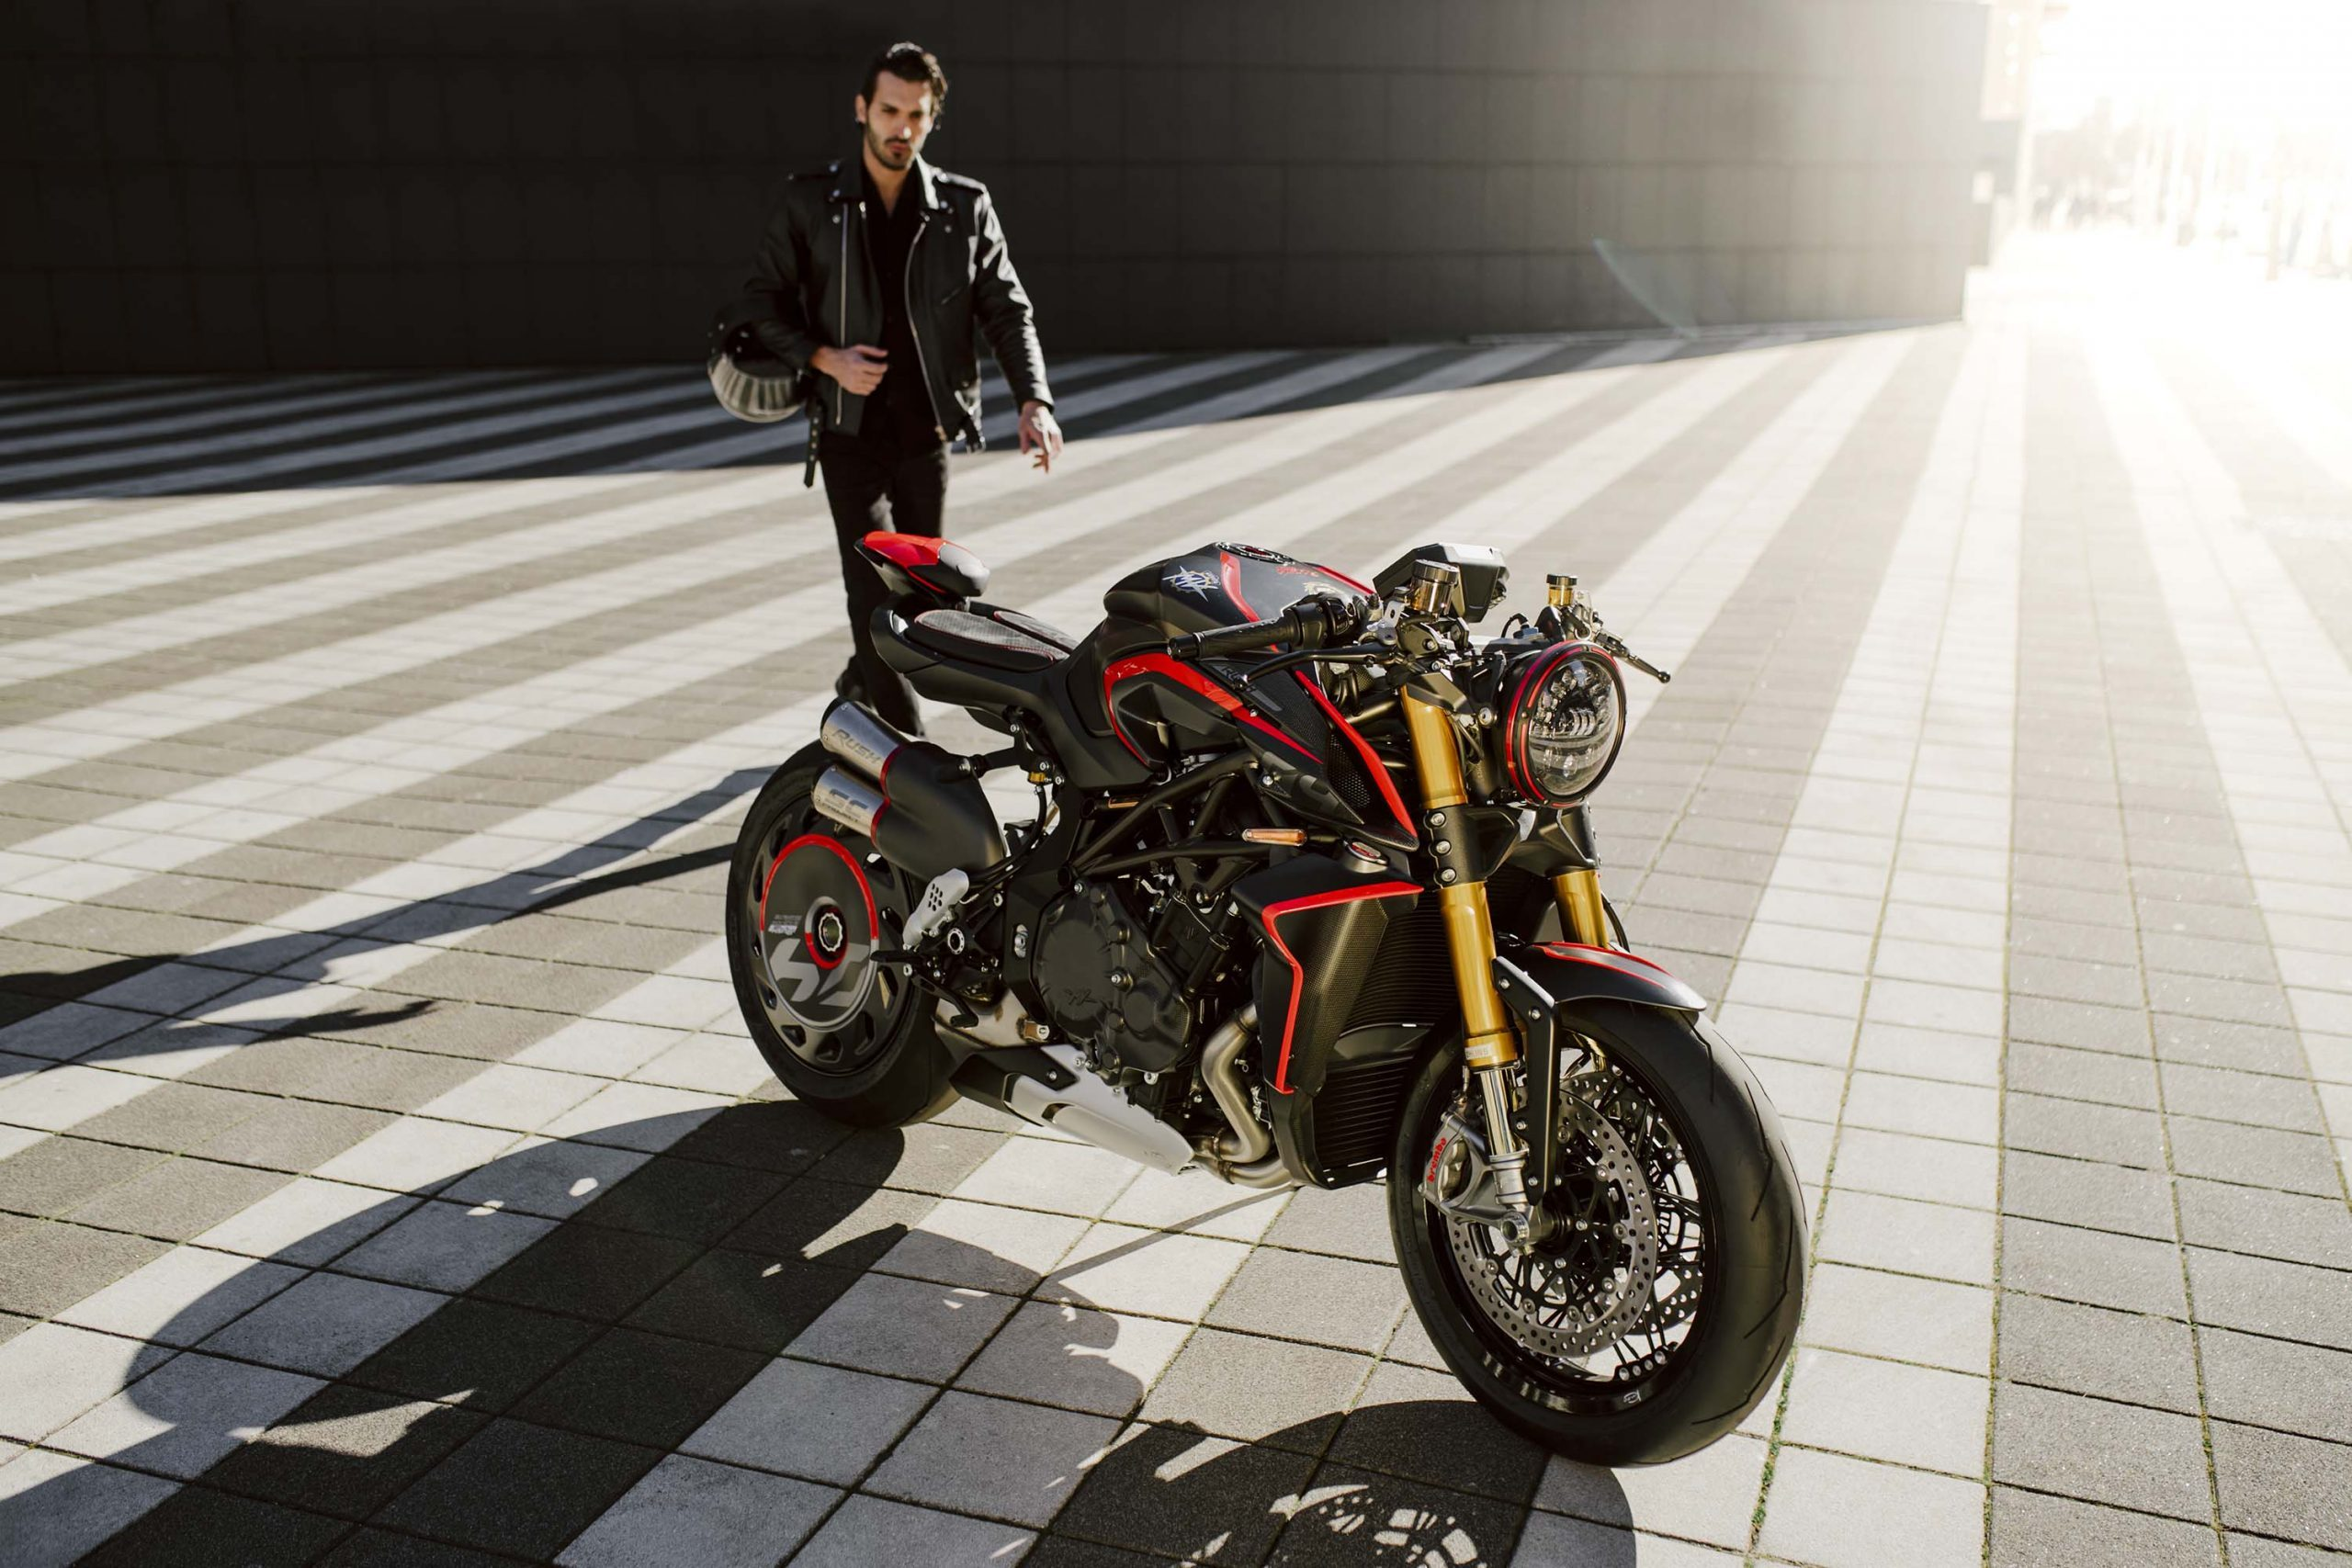 MV Agusta is again back with a new superbike Rush 1000